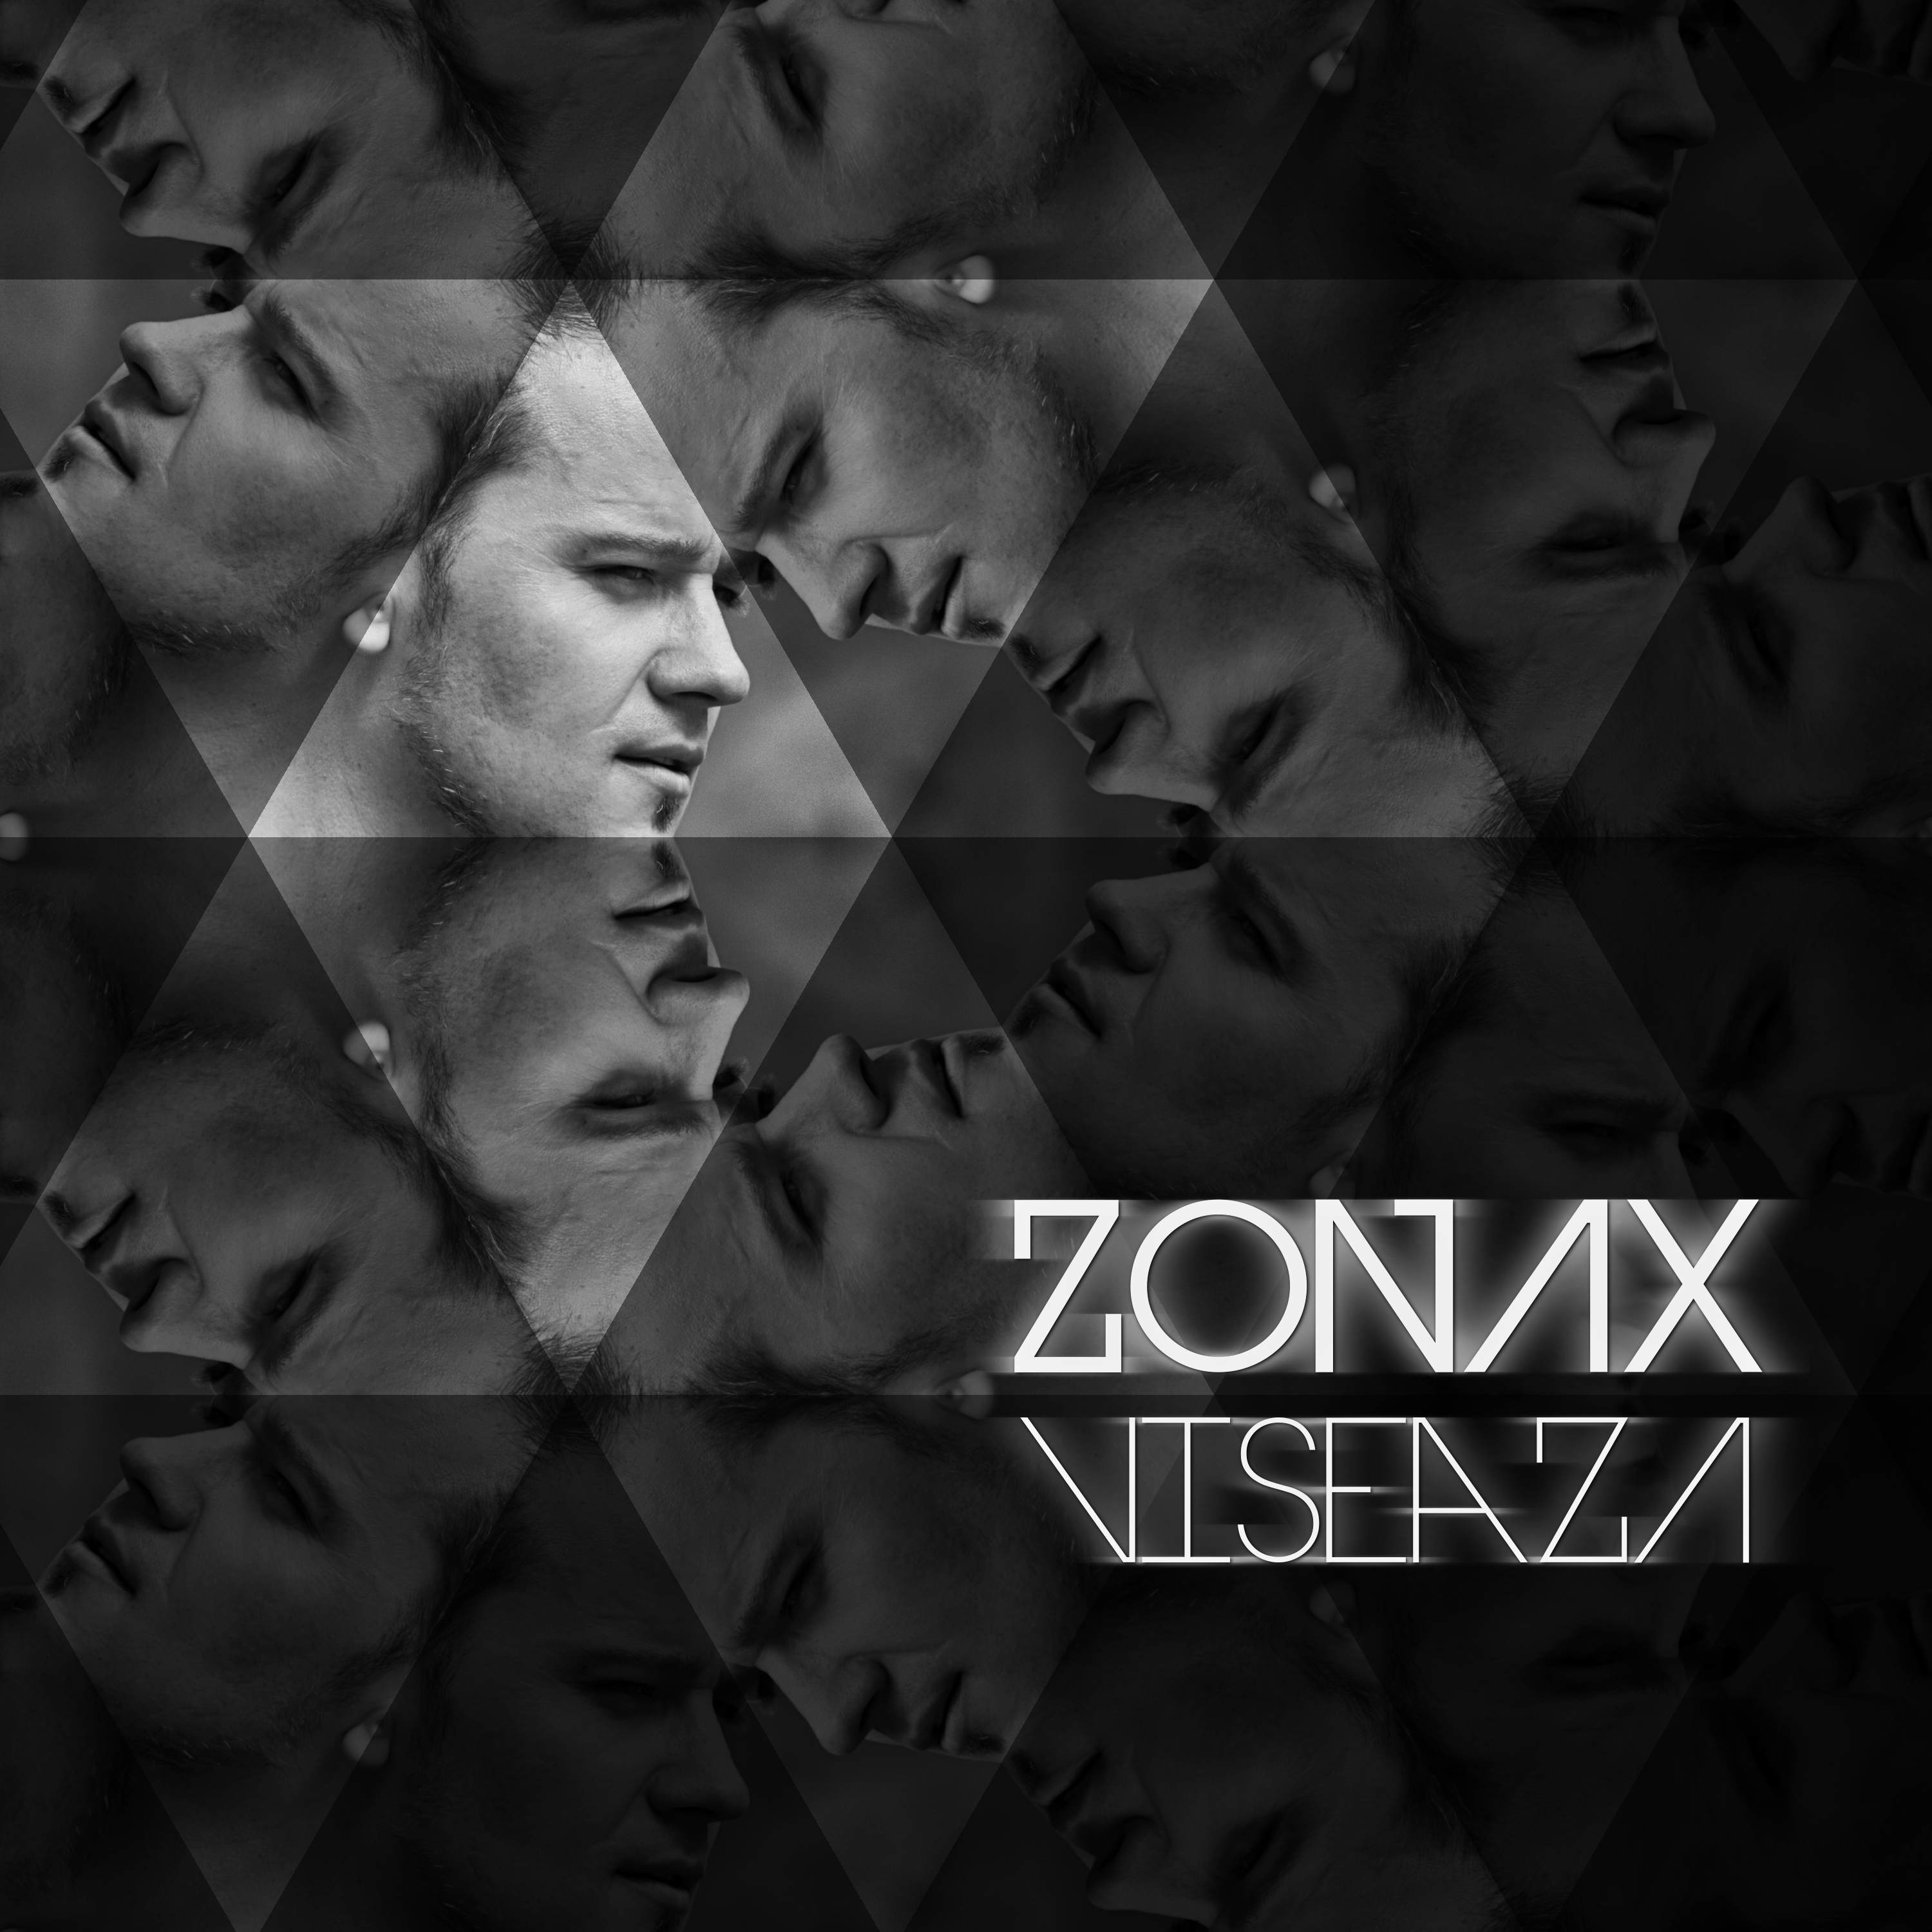 Zona X Viseaza by Amazing Kloud song Cover